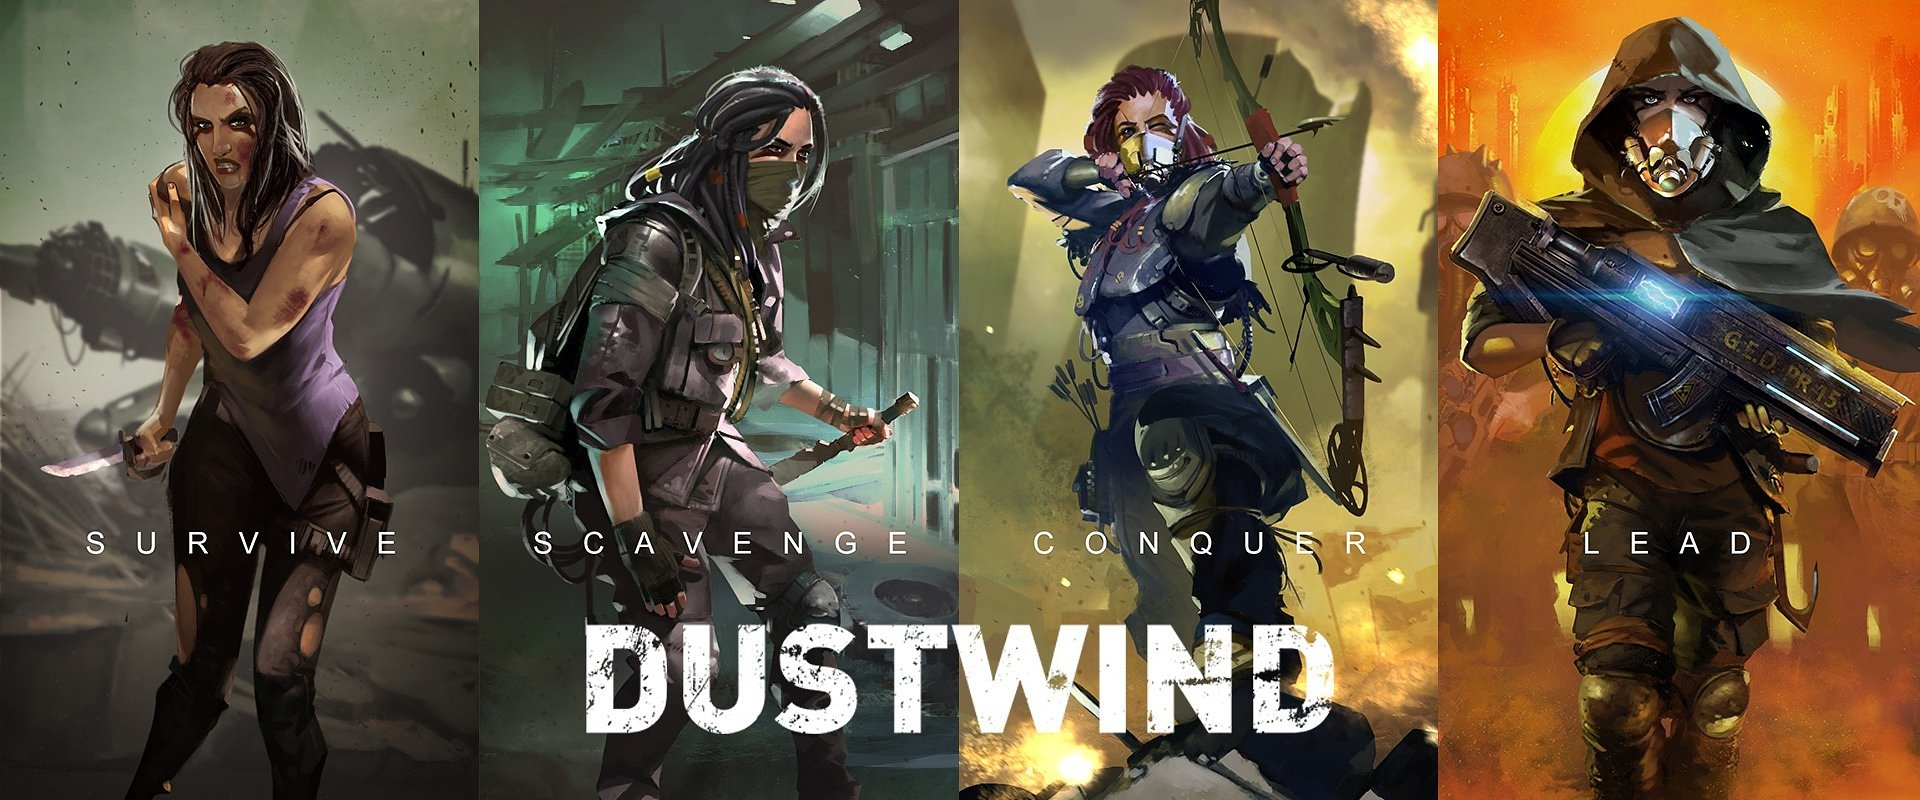 Face the Wasteland and save your daughter! Dustwind - The Last Resort is available on consoles!